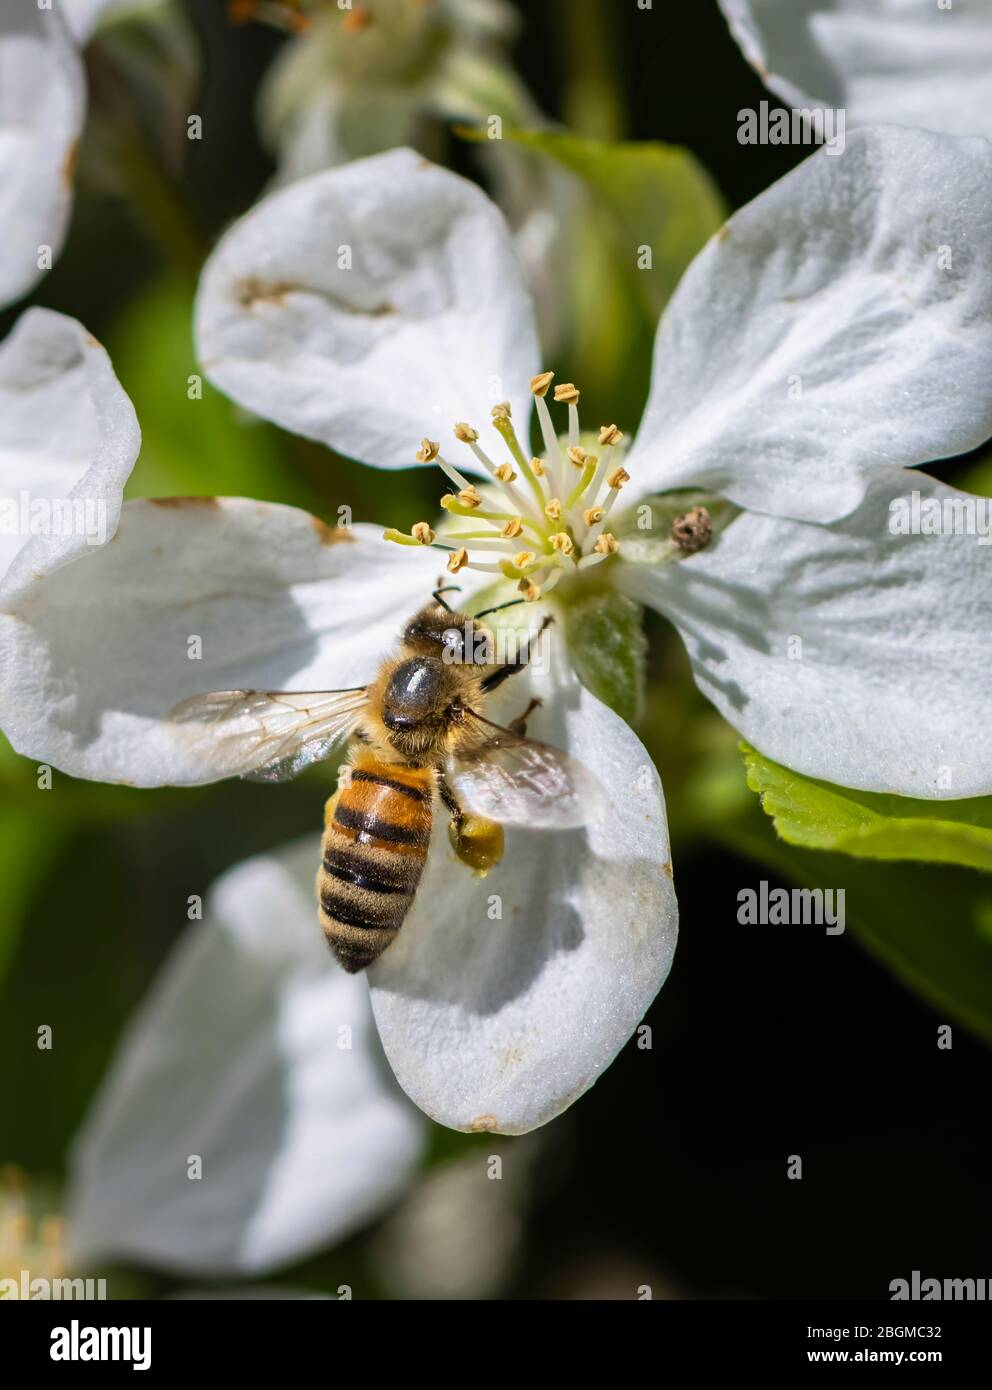 Minibeast: A western honey bee, Apis mellifera, collects nectar and pollen from the stamens of a white apple tree blossom in spring, Surrey Stock Photo